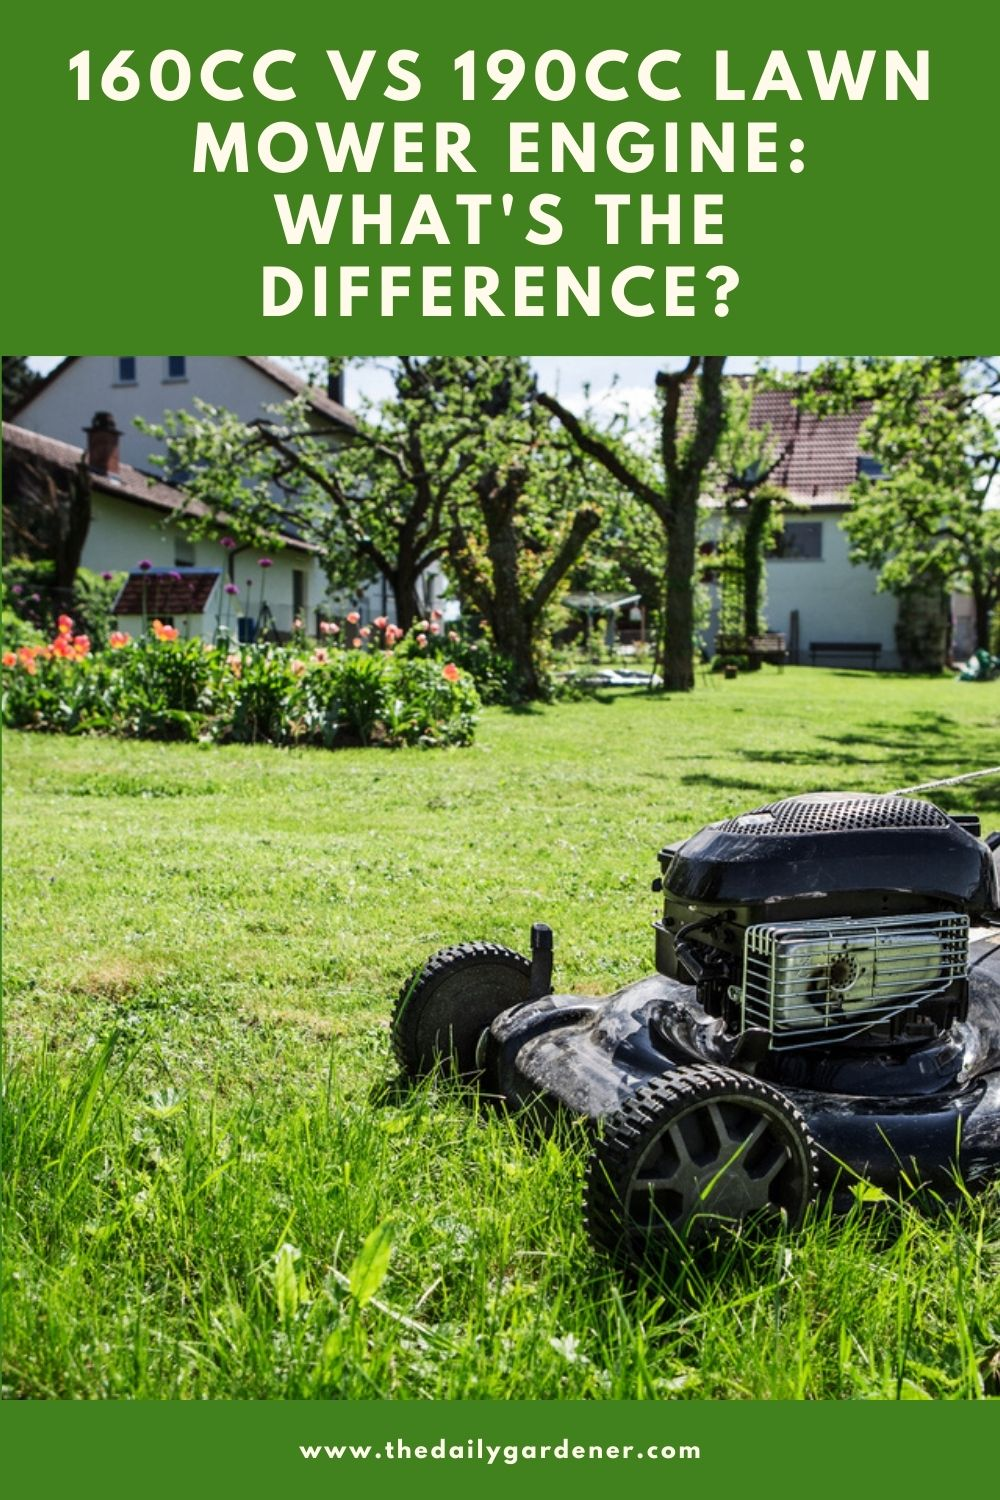 160cc vs 190cc Lawn Mower Engine What's the Difference 1